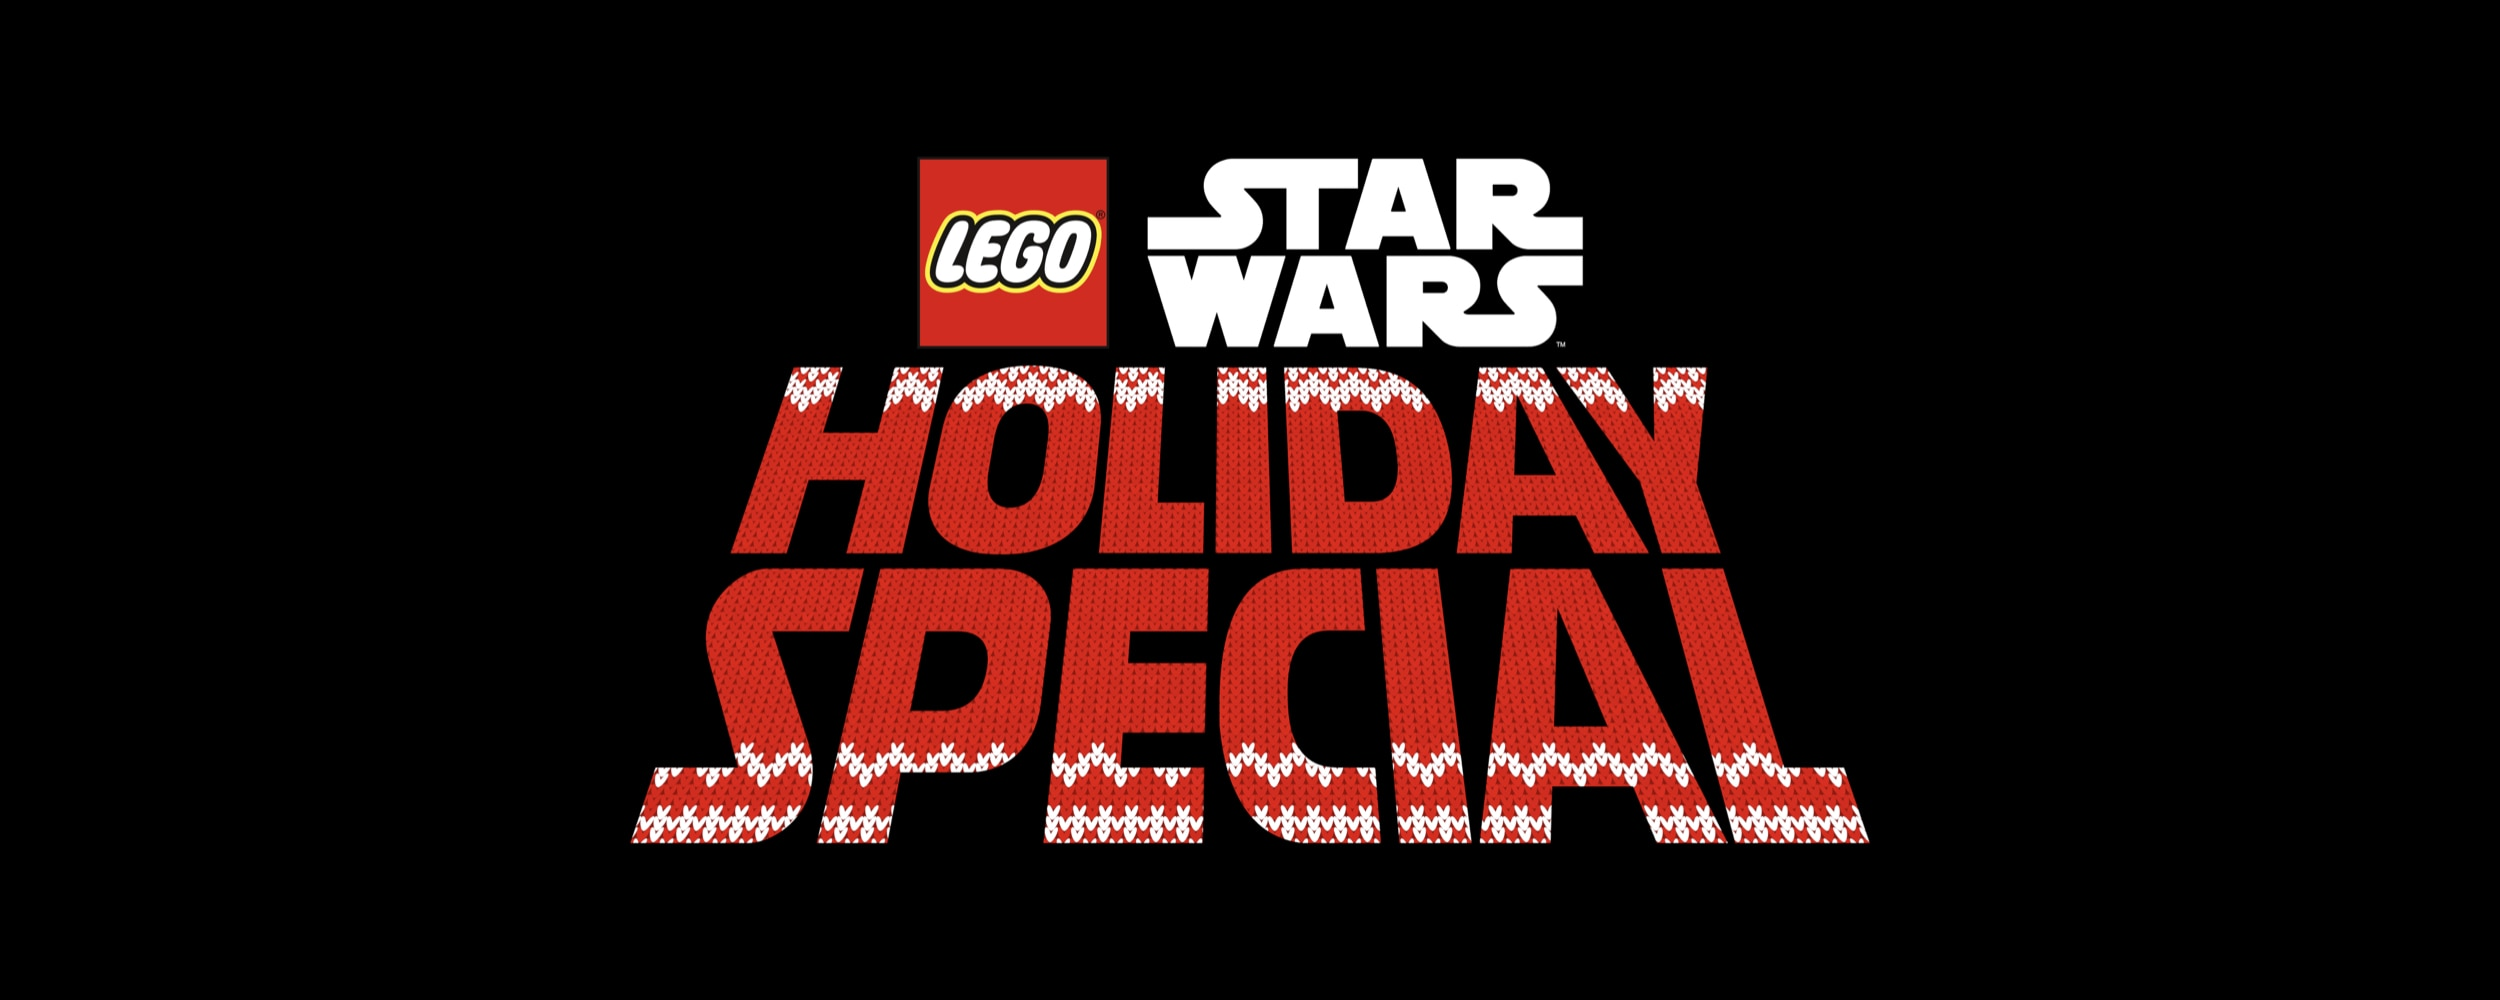 LEGO Star Wars Holiday Special Media Kit